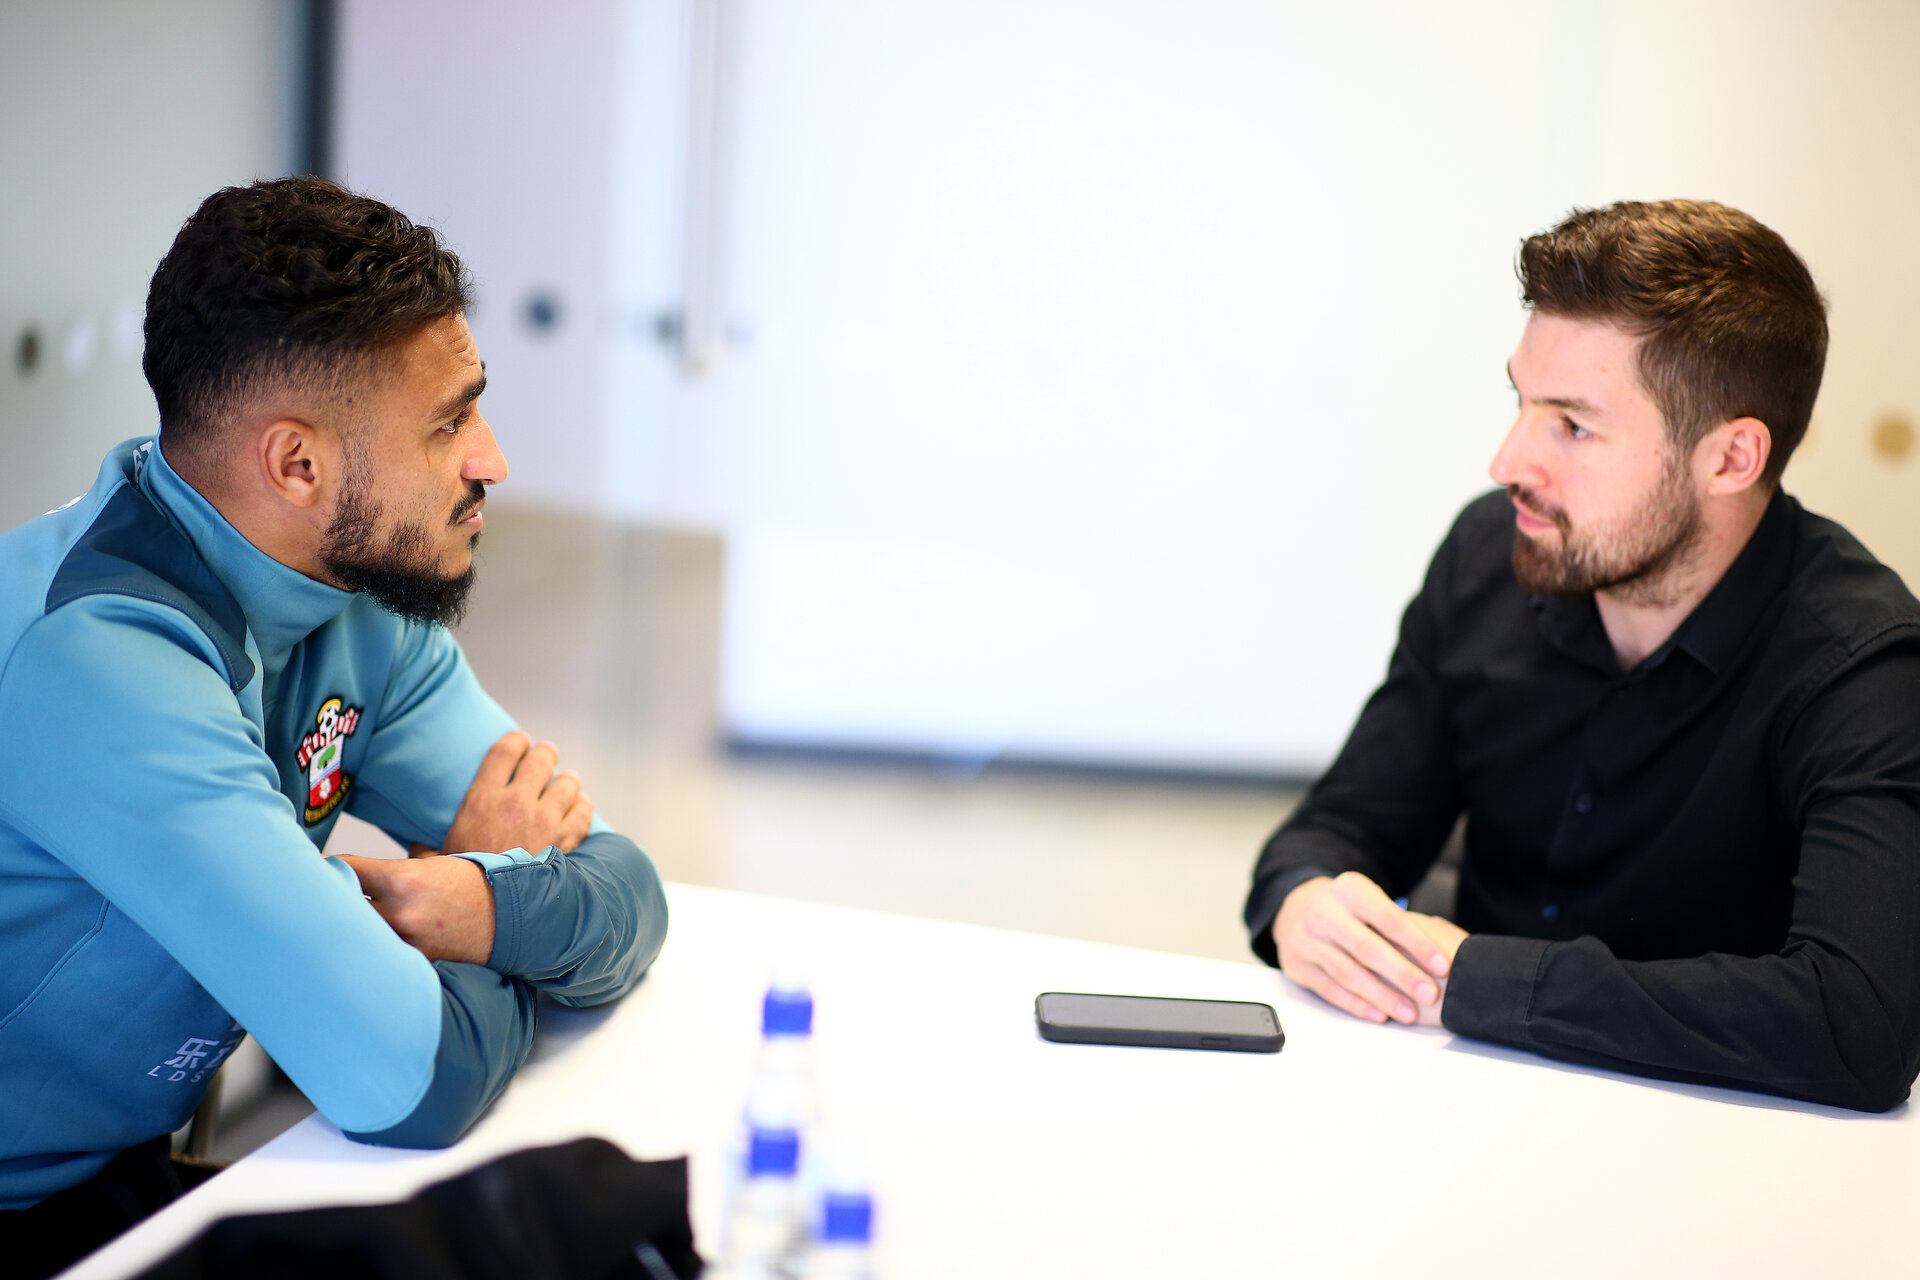 SOUTHAMPTON, ENGLAND - OCTOBER 02: Sofiane Boufal(L) of Southampton FC pictured being interviewed by Mark Perrow for the club's match day magazine at the Staplewood Campus on October 02, 2019 in Southampton, England. (Photo by Matt Watson/Southampton FC via Getty Images)